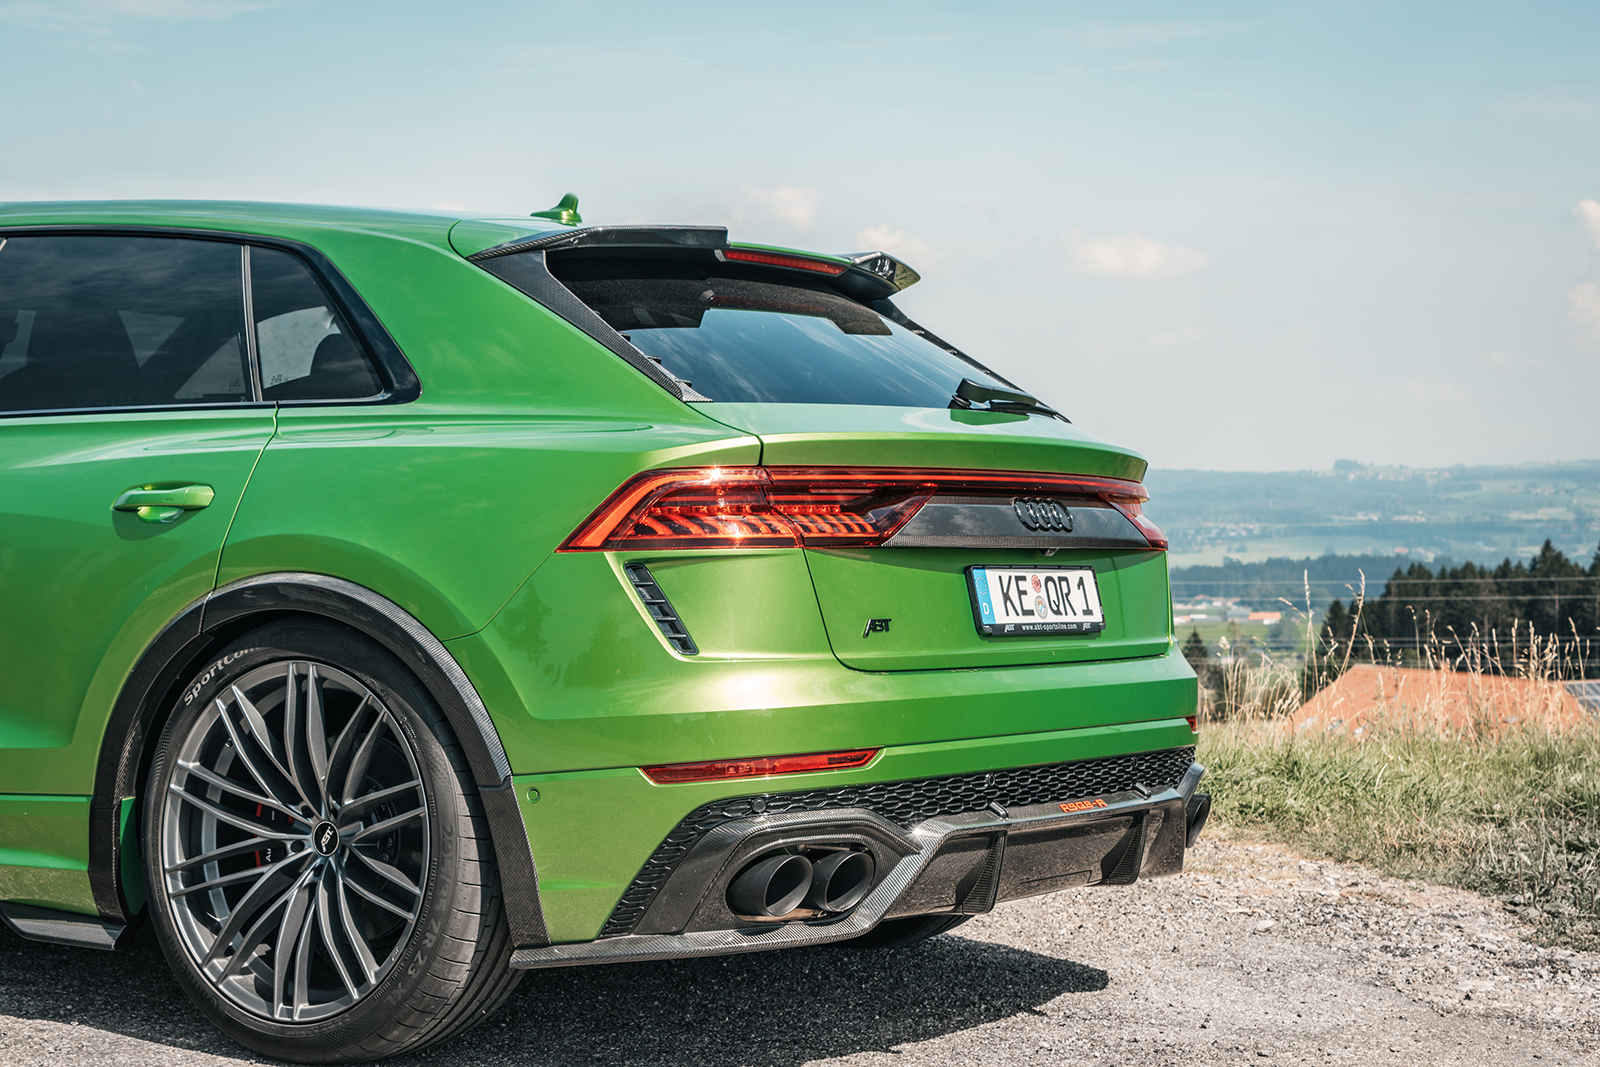 ABT_RSQ8-R_green_HR23_landscape_rear_detail